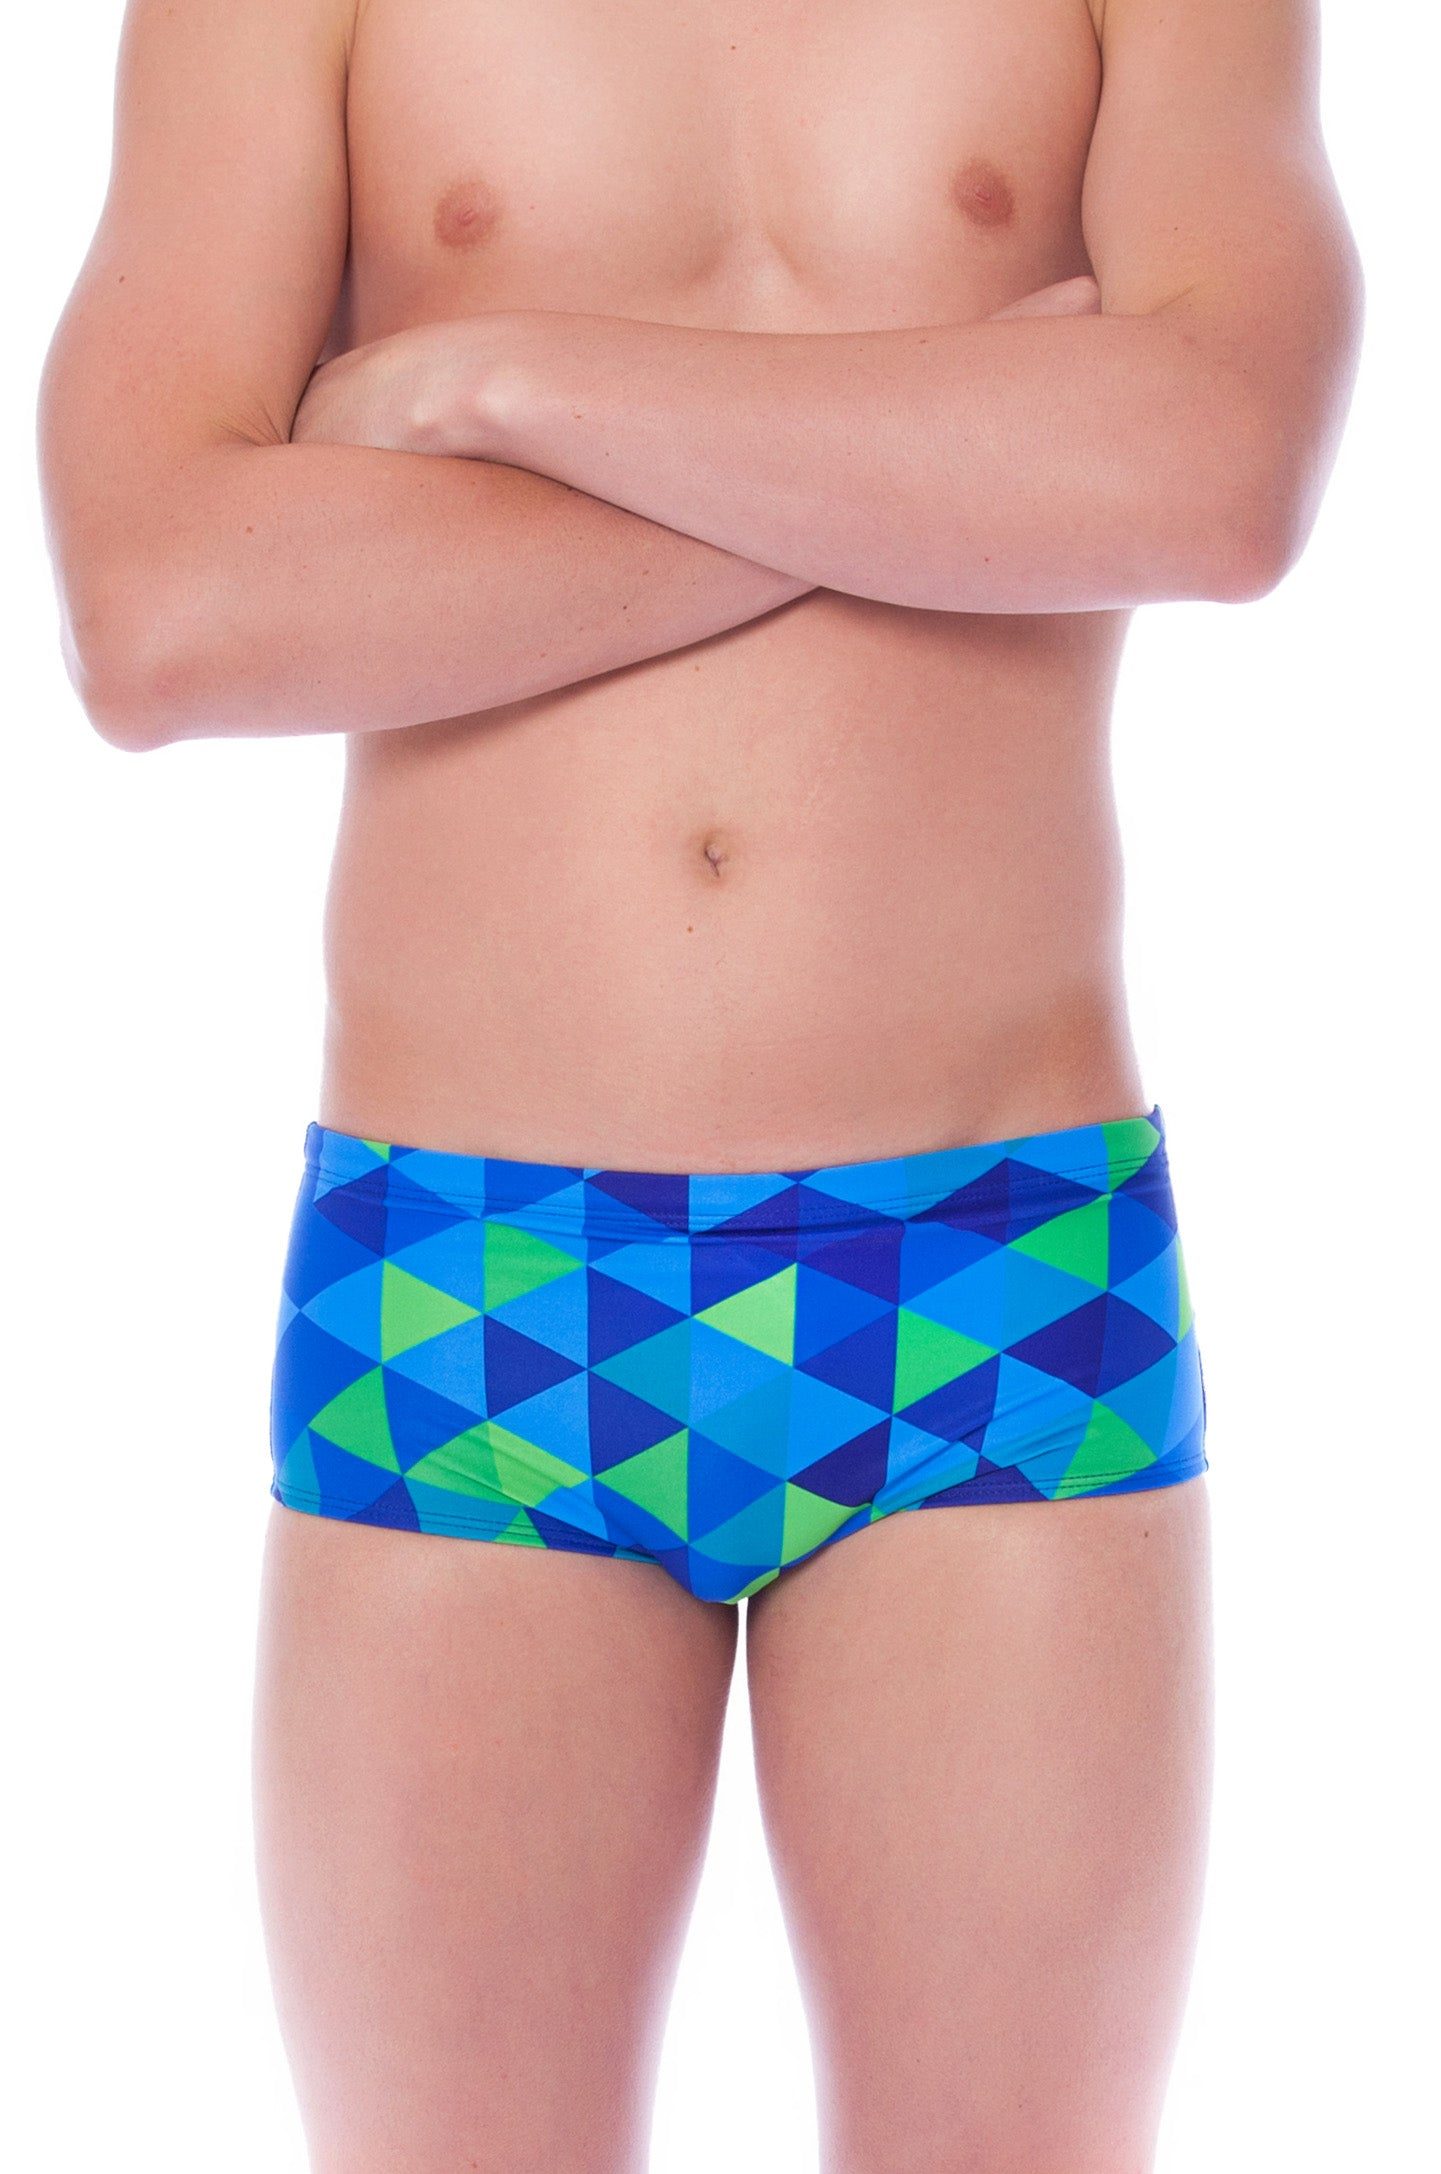 Kryptonite Boys Trunks - Shop Zealous Training Swimwear